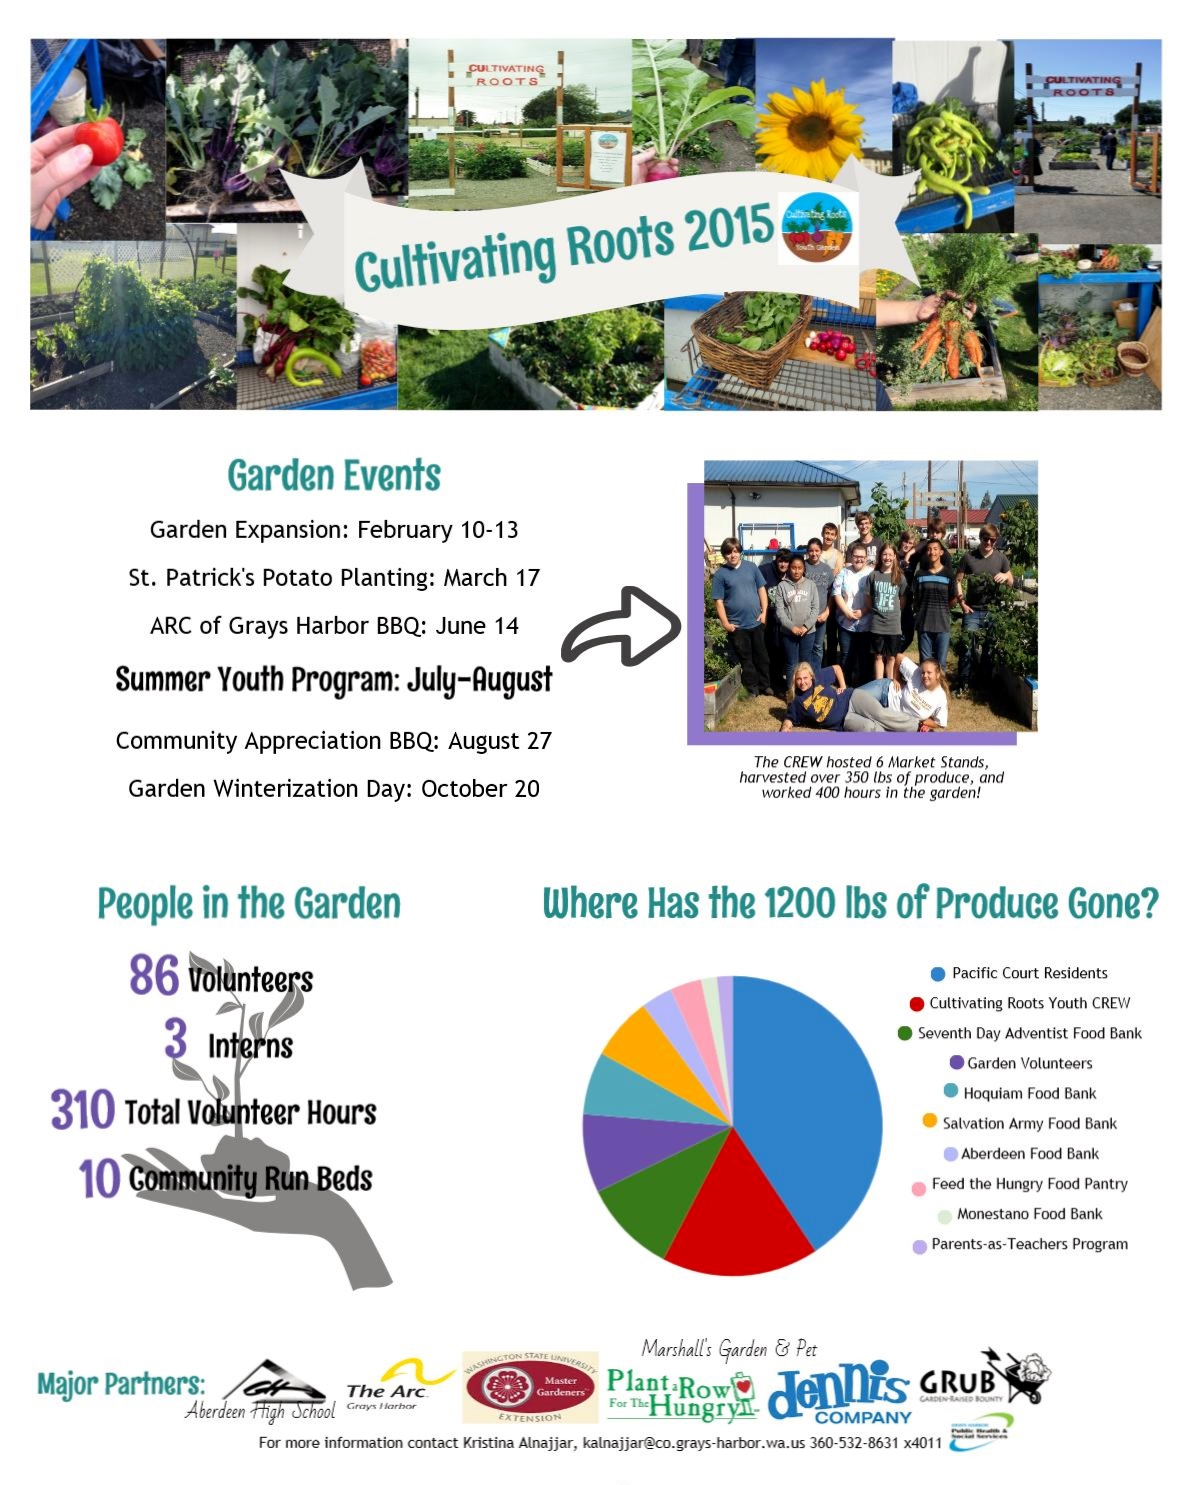 2015 Cultivating Roots Summary.jpeg